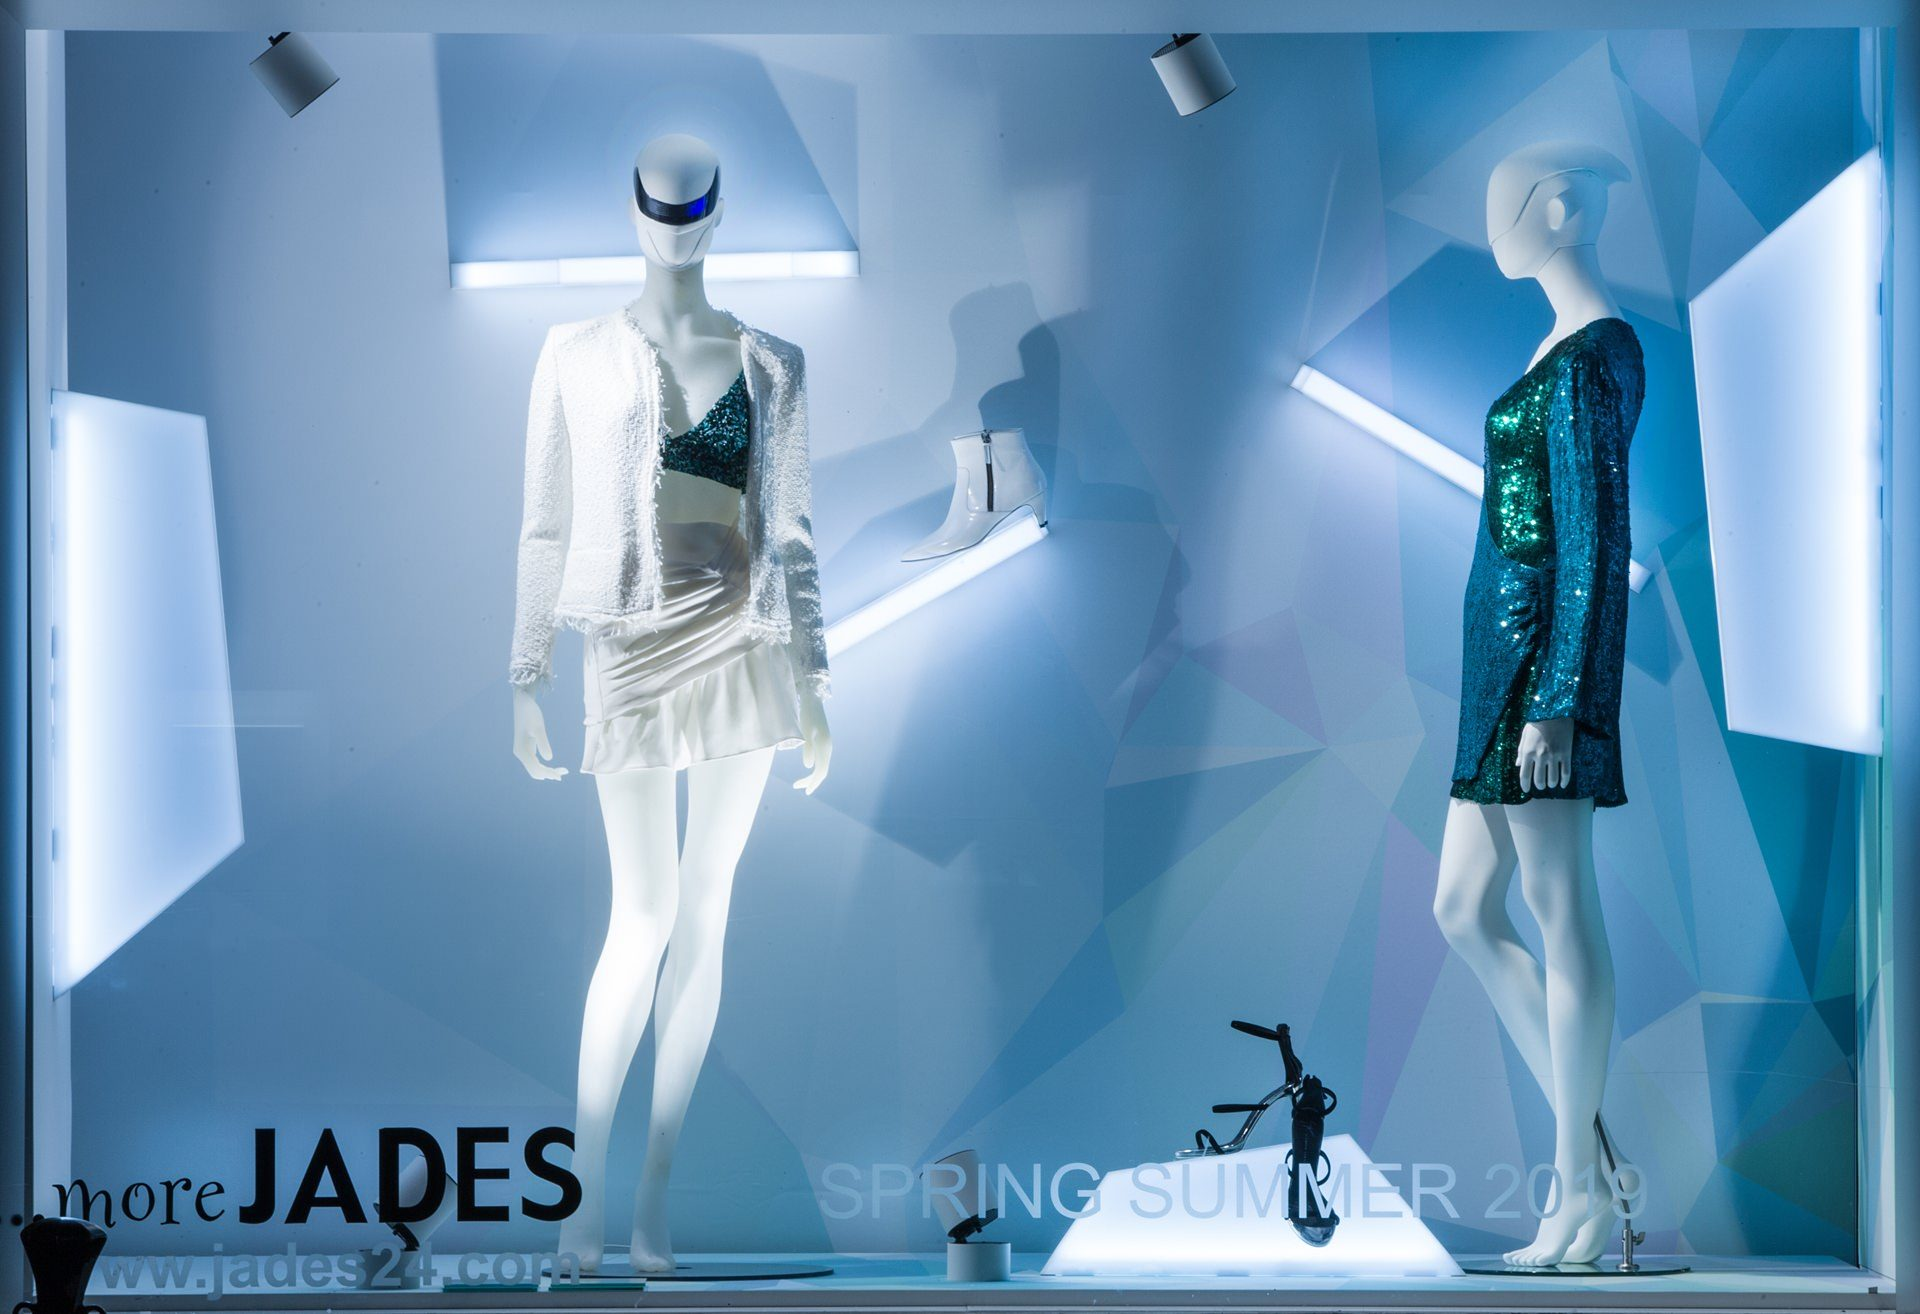 More Jades Galactic X Mas Autumn / Winter 2018 by Sayonara Visual Concepts